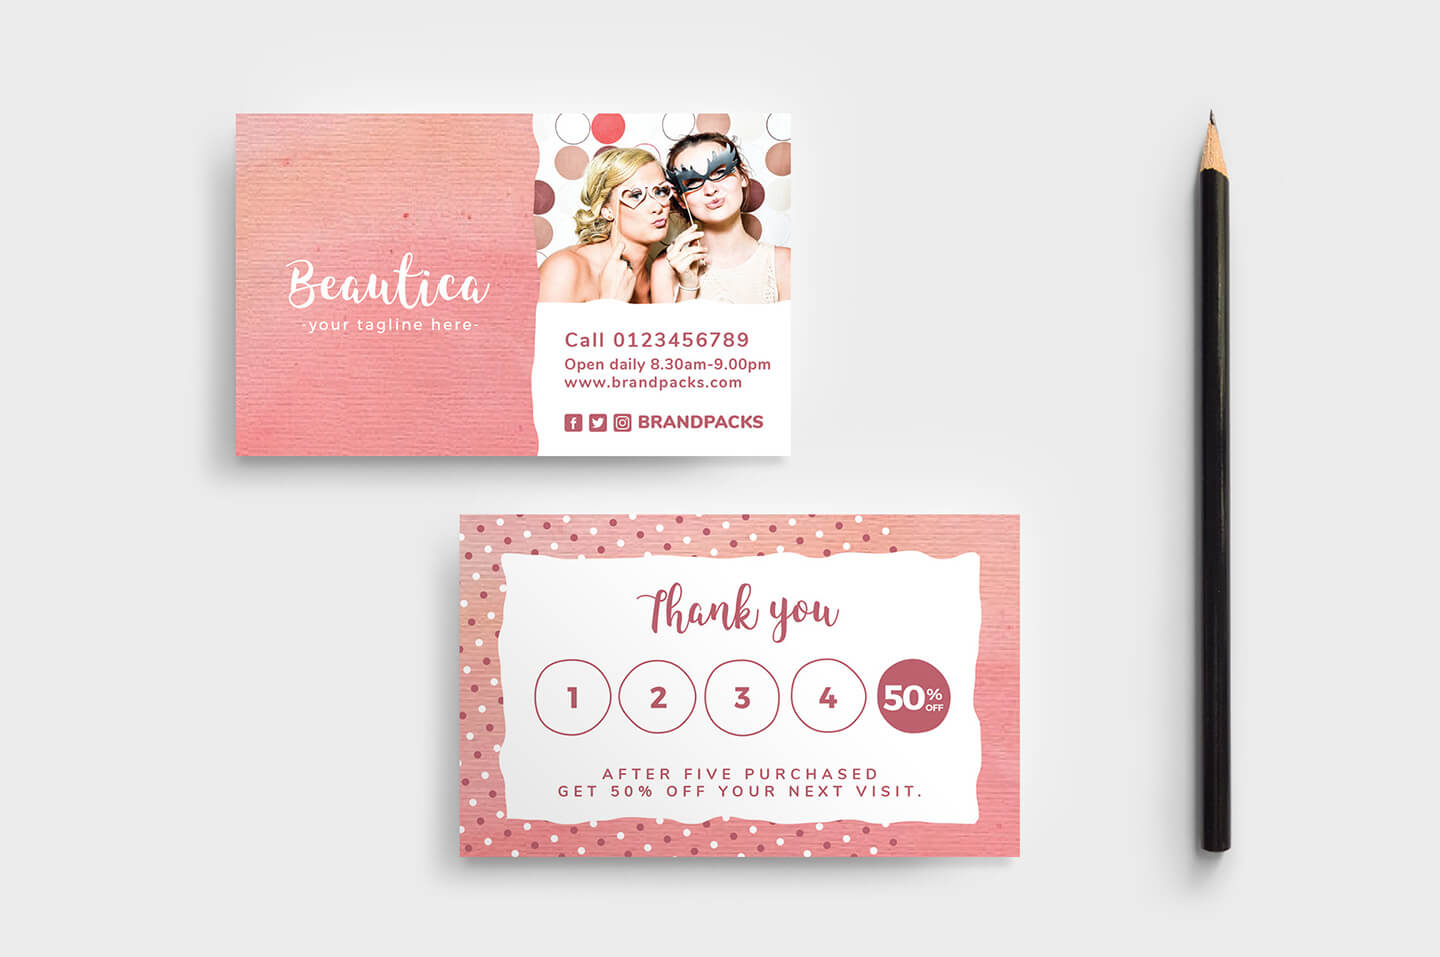 Free Loyalty Card Templates - Psd, Ai & Vector - Brandpacks In Loyalty Card Design Template